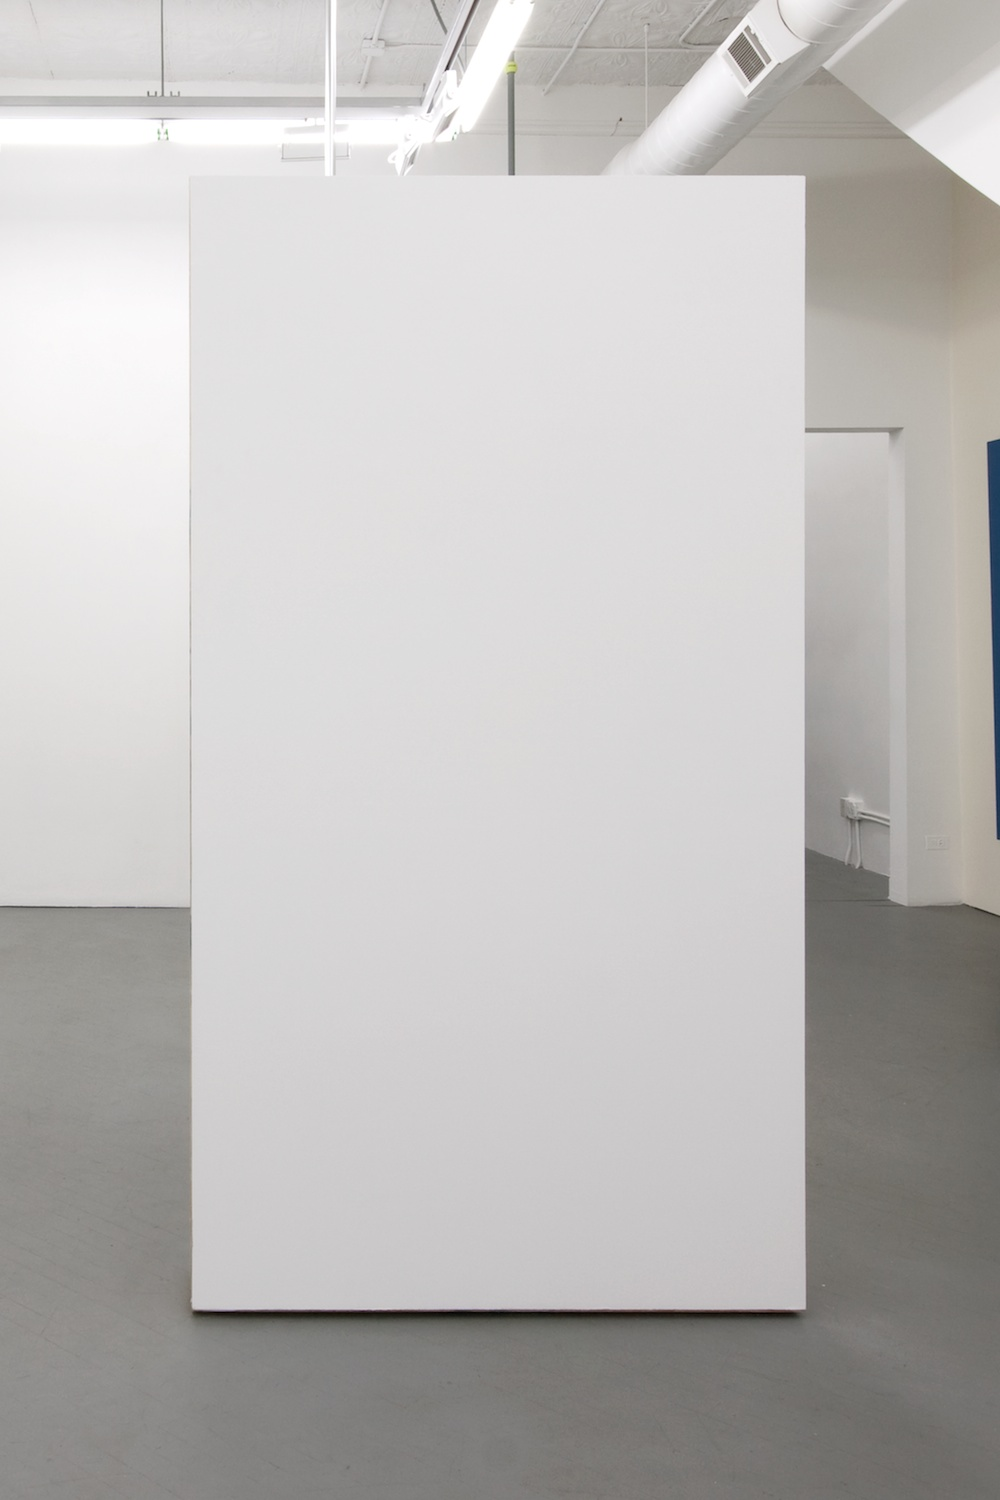 "Brendan Fowler Summer 2012 Wall (90""x 48"" White Flat) / Summer 2012 Wall (90""x 48"" White Flat) / Summer 2012 Wall (90""x 48"" White Flat) / Summer 2012 Wall (90""x 48"" White Flat) 2012 Lumber, drywall, latex paint 90"" x 48"" x 4.25"" (Four sections) BF001"